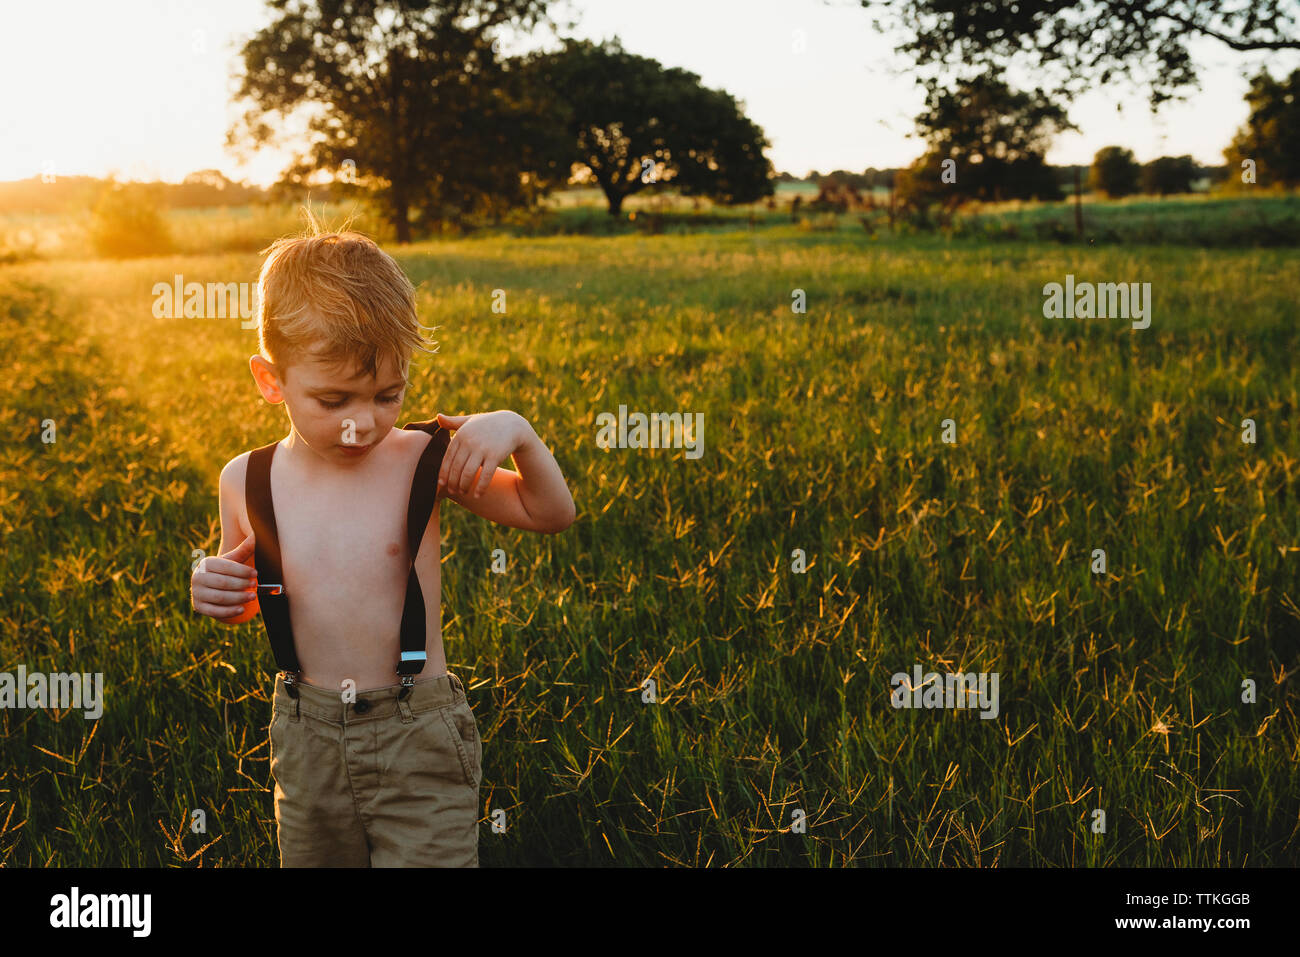 Shirtless boy wearing suspenders while standing amidst plants on field during sunset - Stock Image